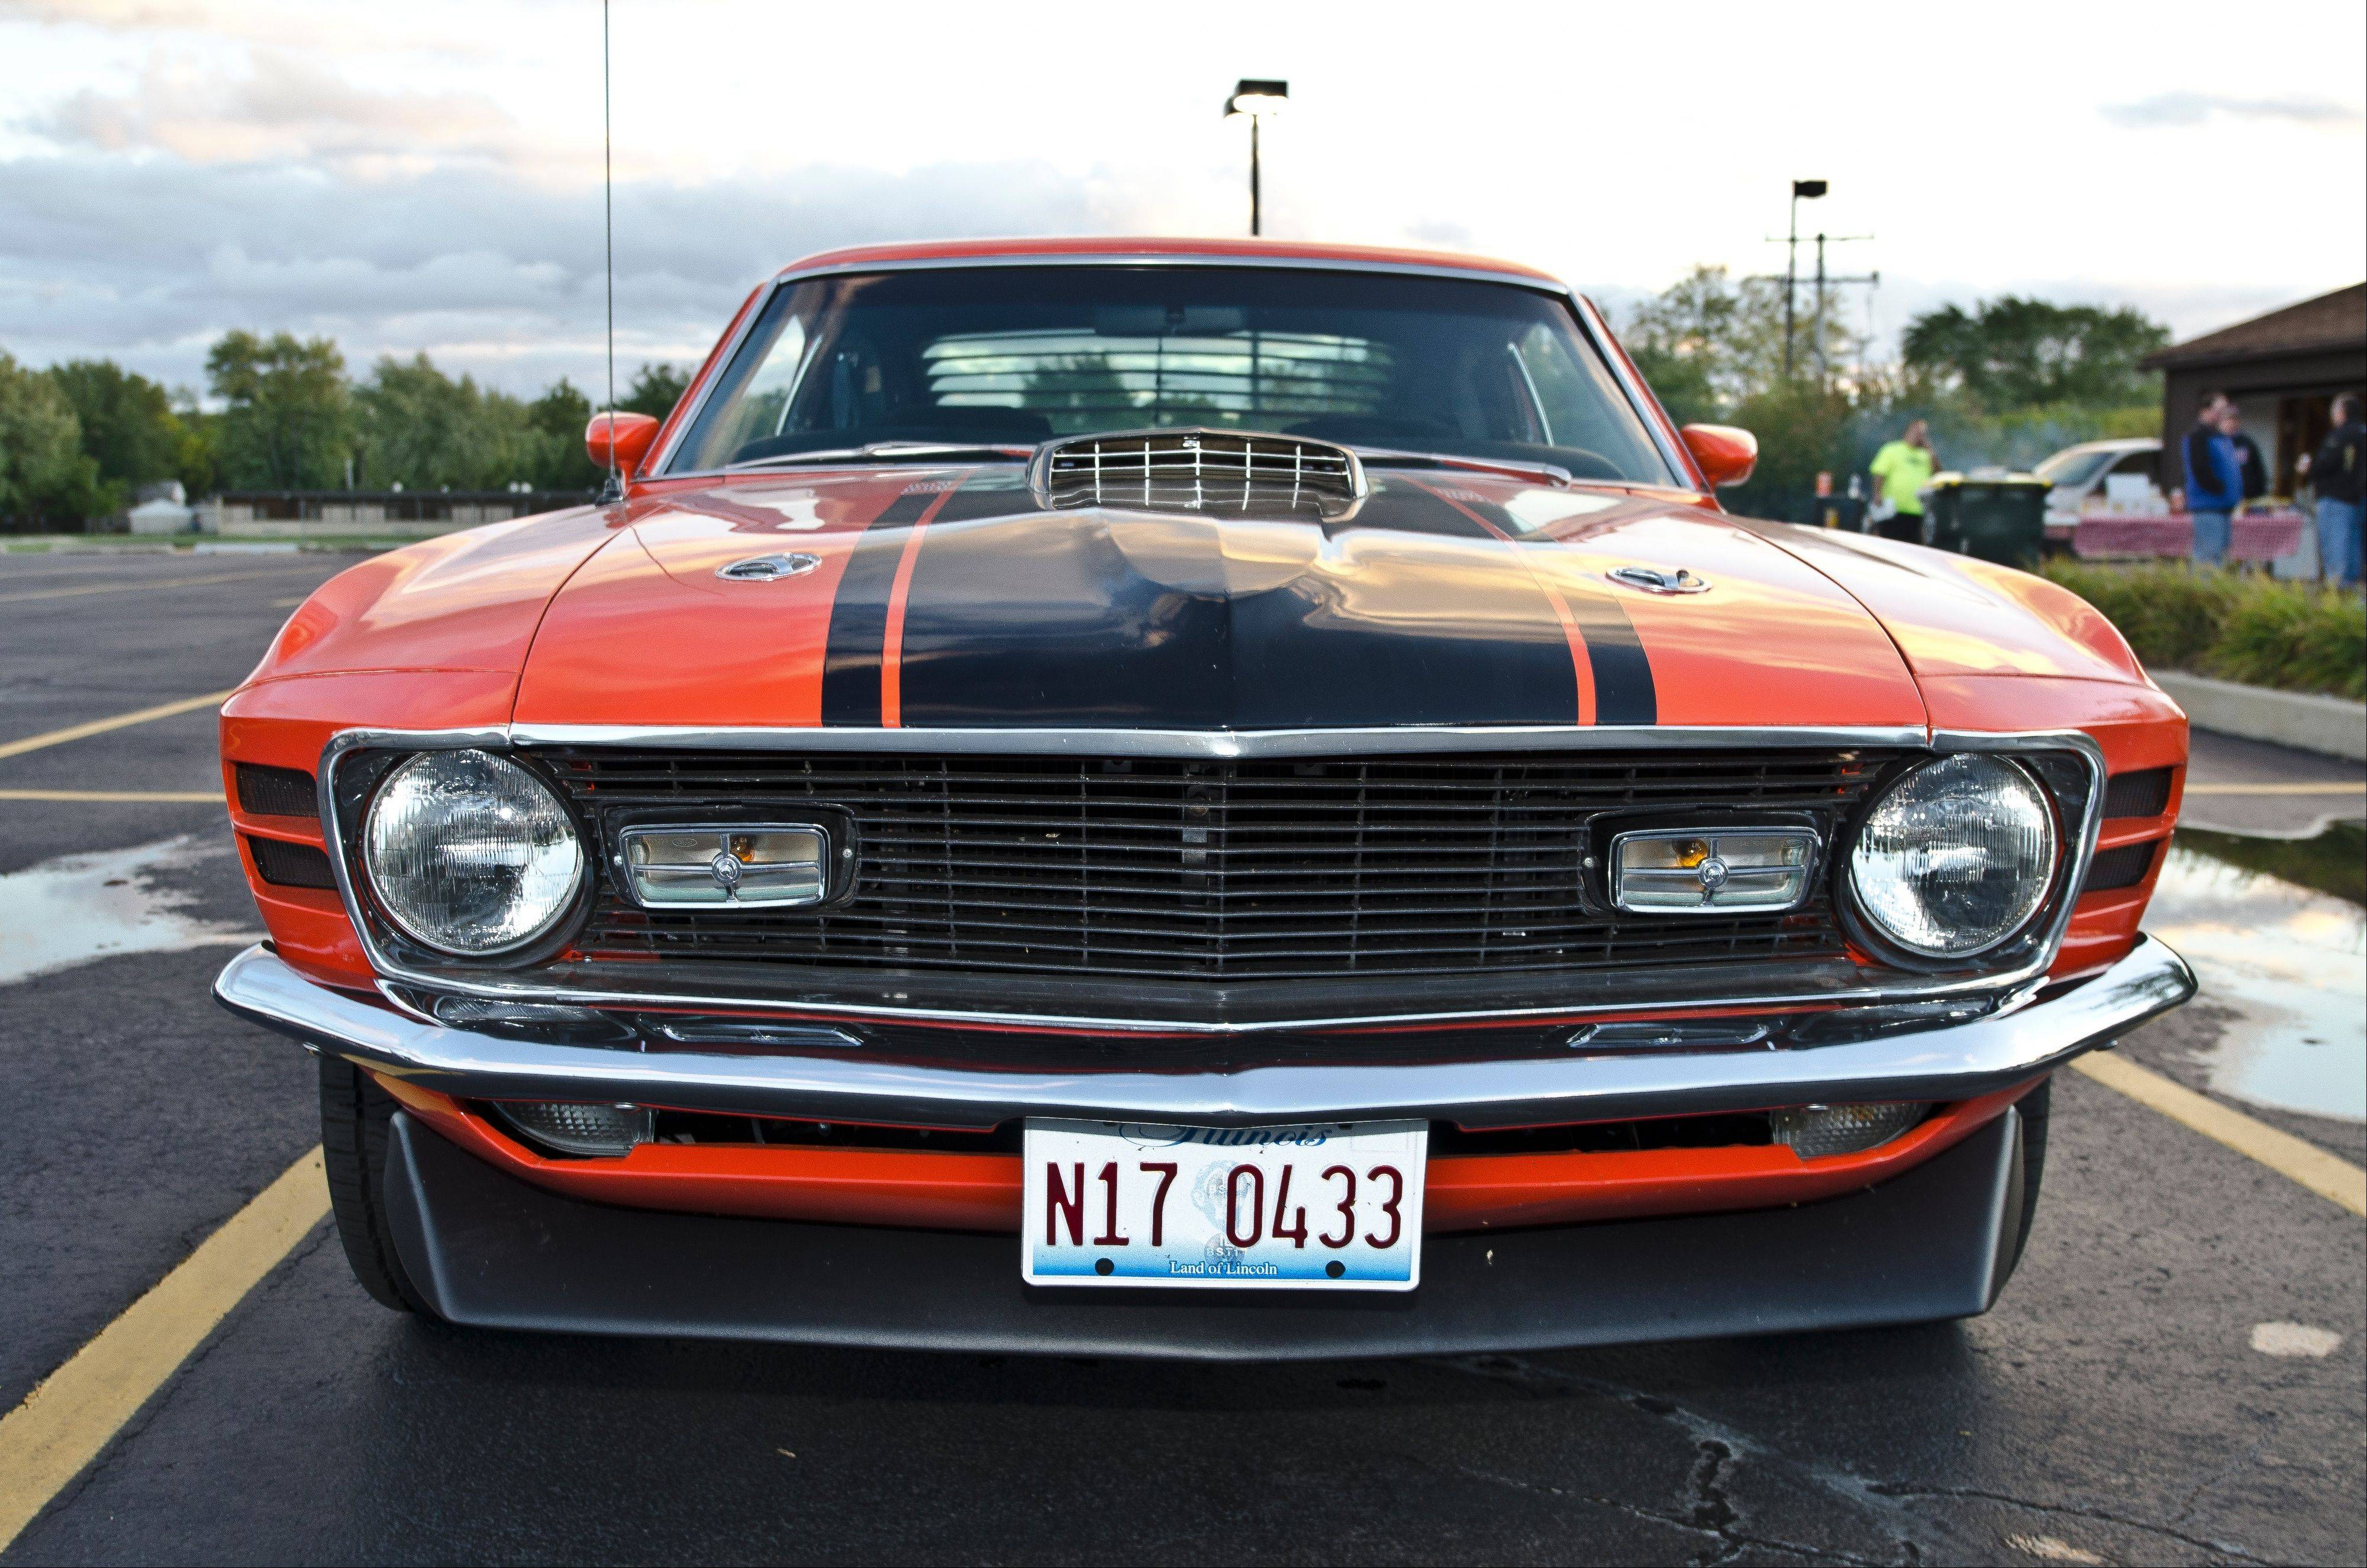 Otto's Mustang is now covered in a Calypso Coral paint color with black stripes.